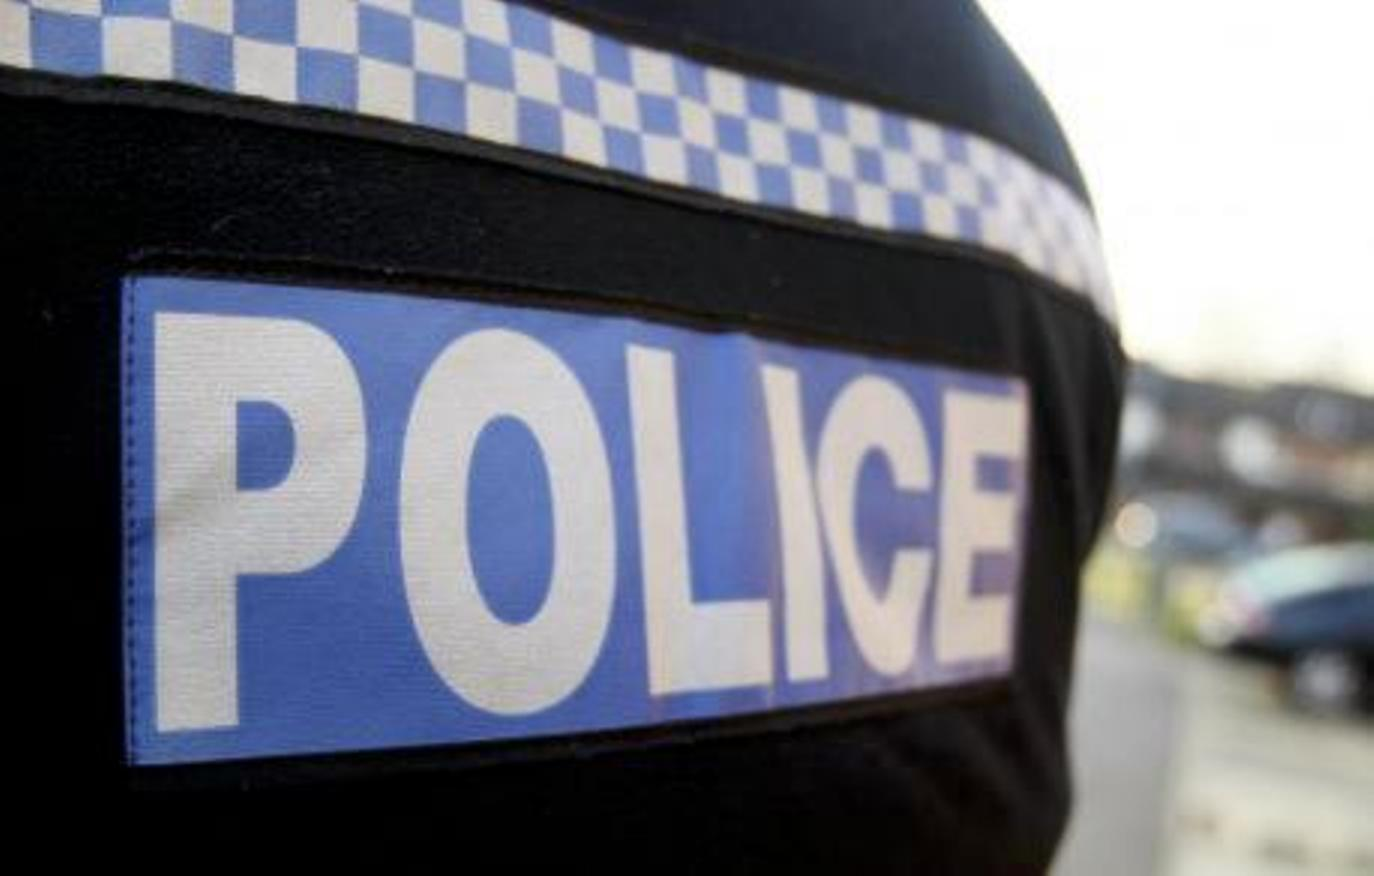 Man assaulted in Westcliff